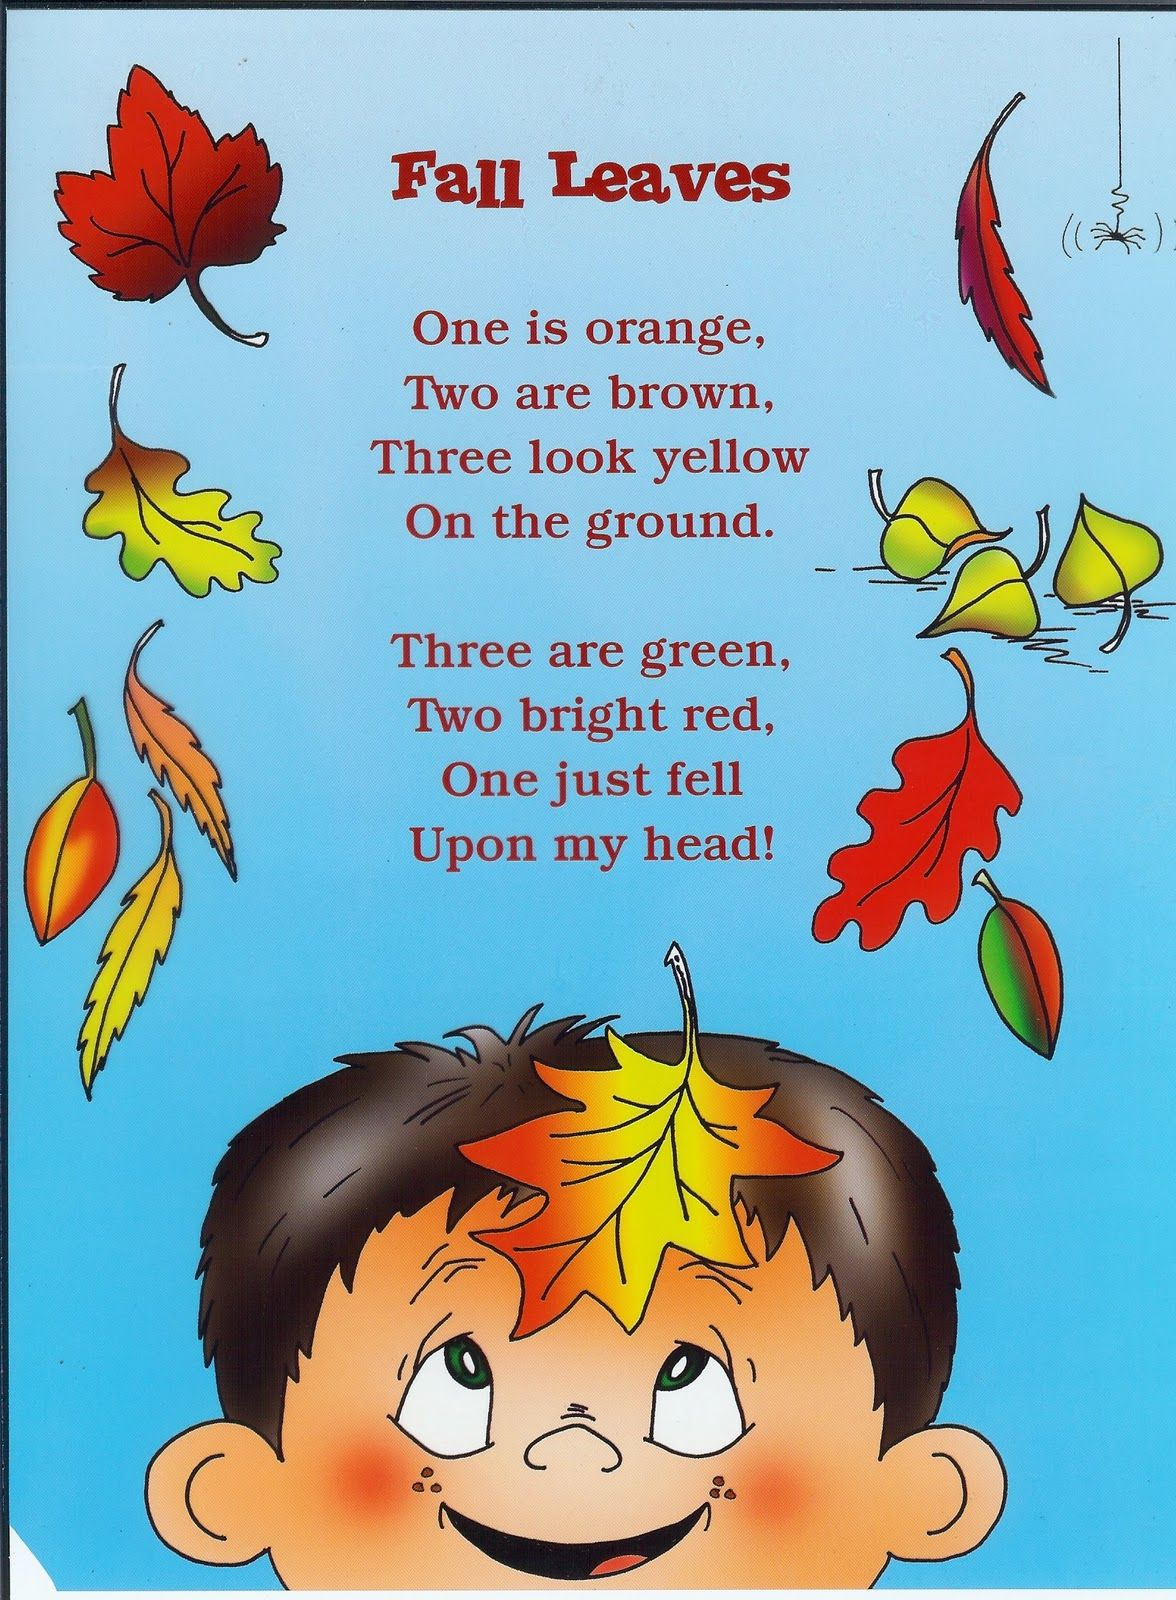 fall harvest poems for preschoolers | Blog Archive Fall Leaves Funny ...